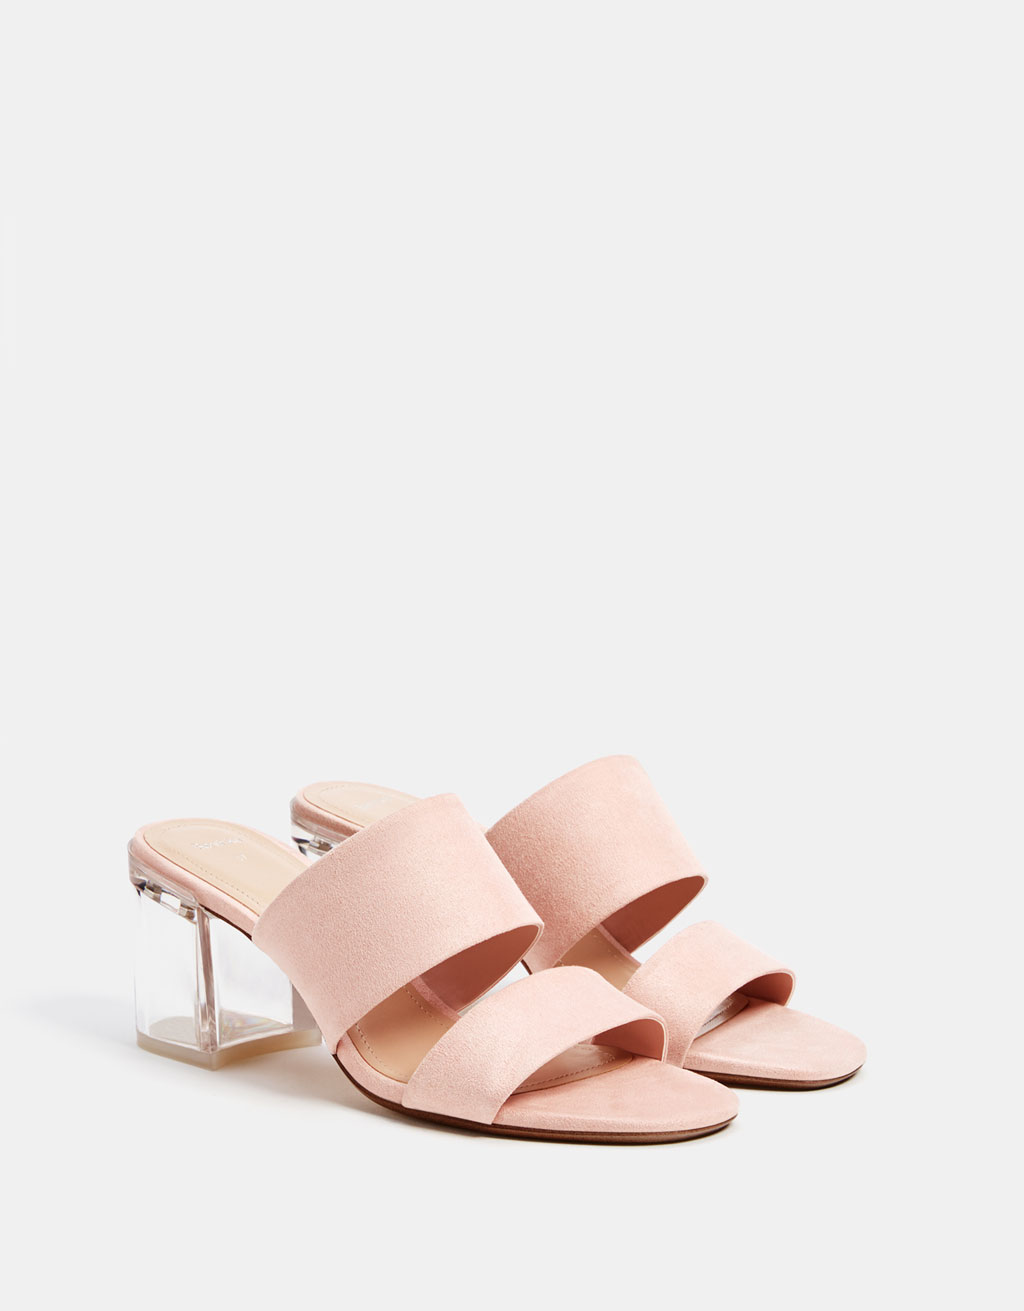 Sandals with methacrylate heels